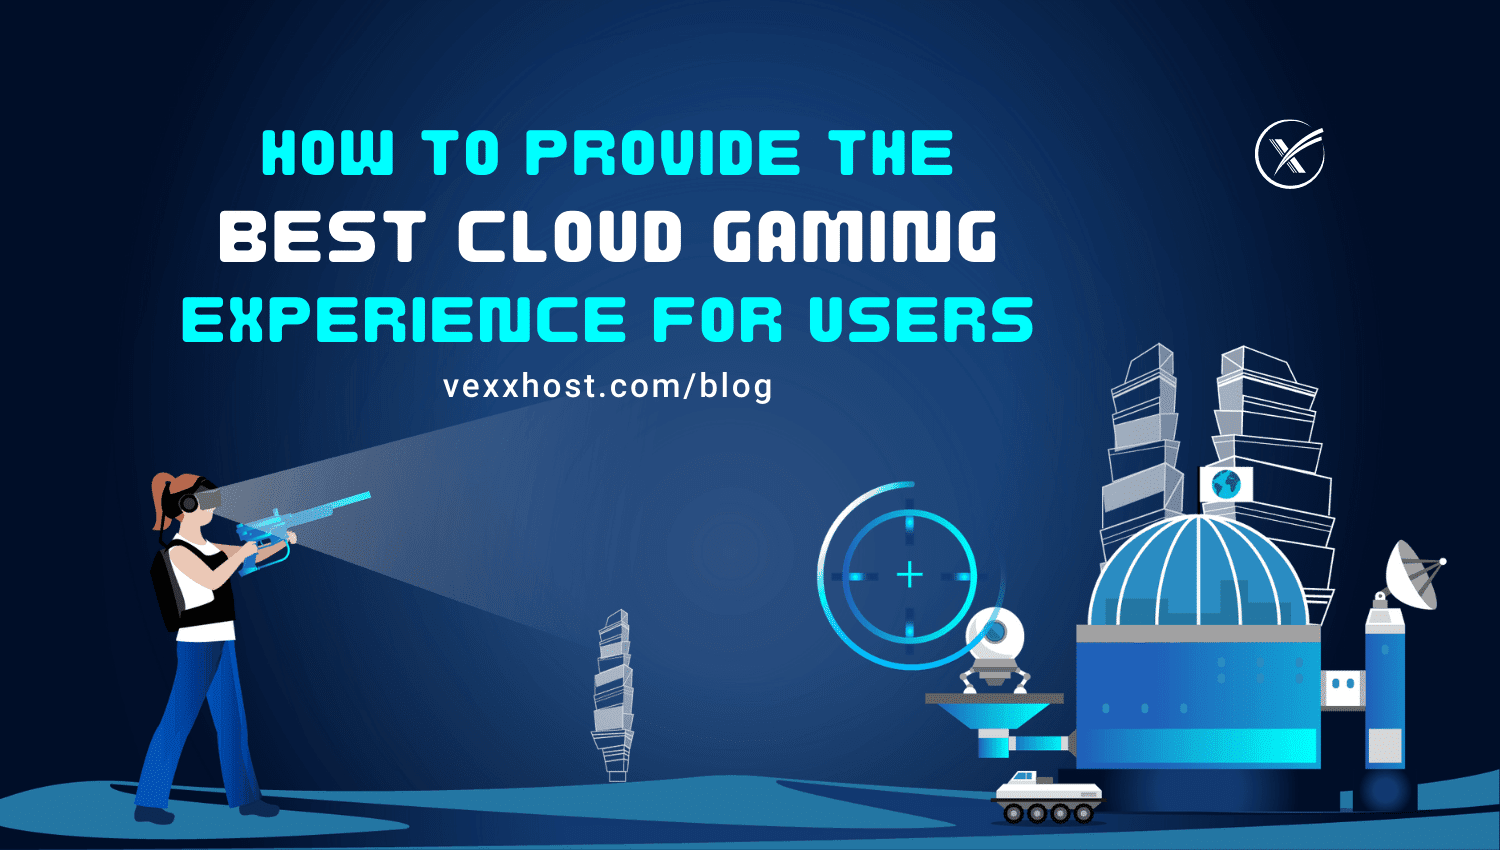 How-to-Provide-the-Best-Cloud-Gaming-Experience-for-Users